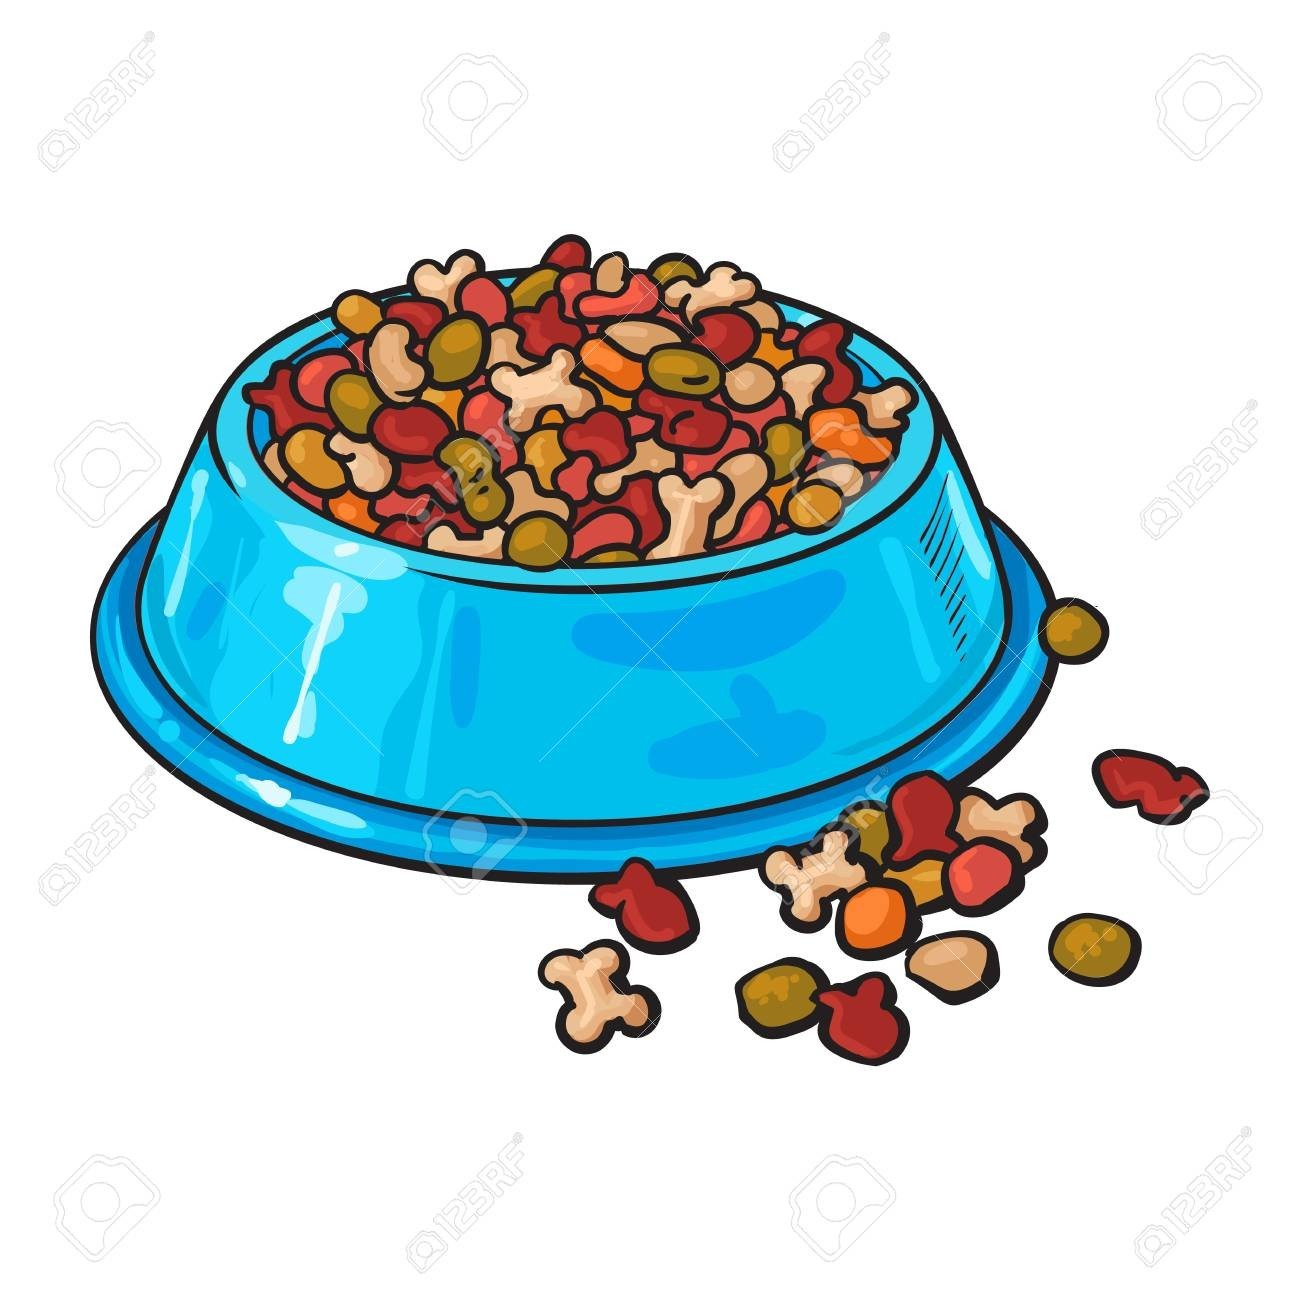 Dishes clipart milk bowl. On cat dish clip